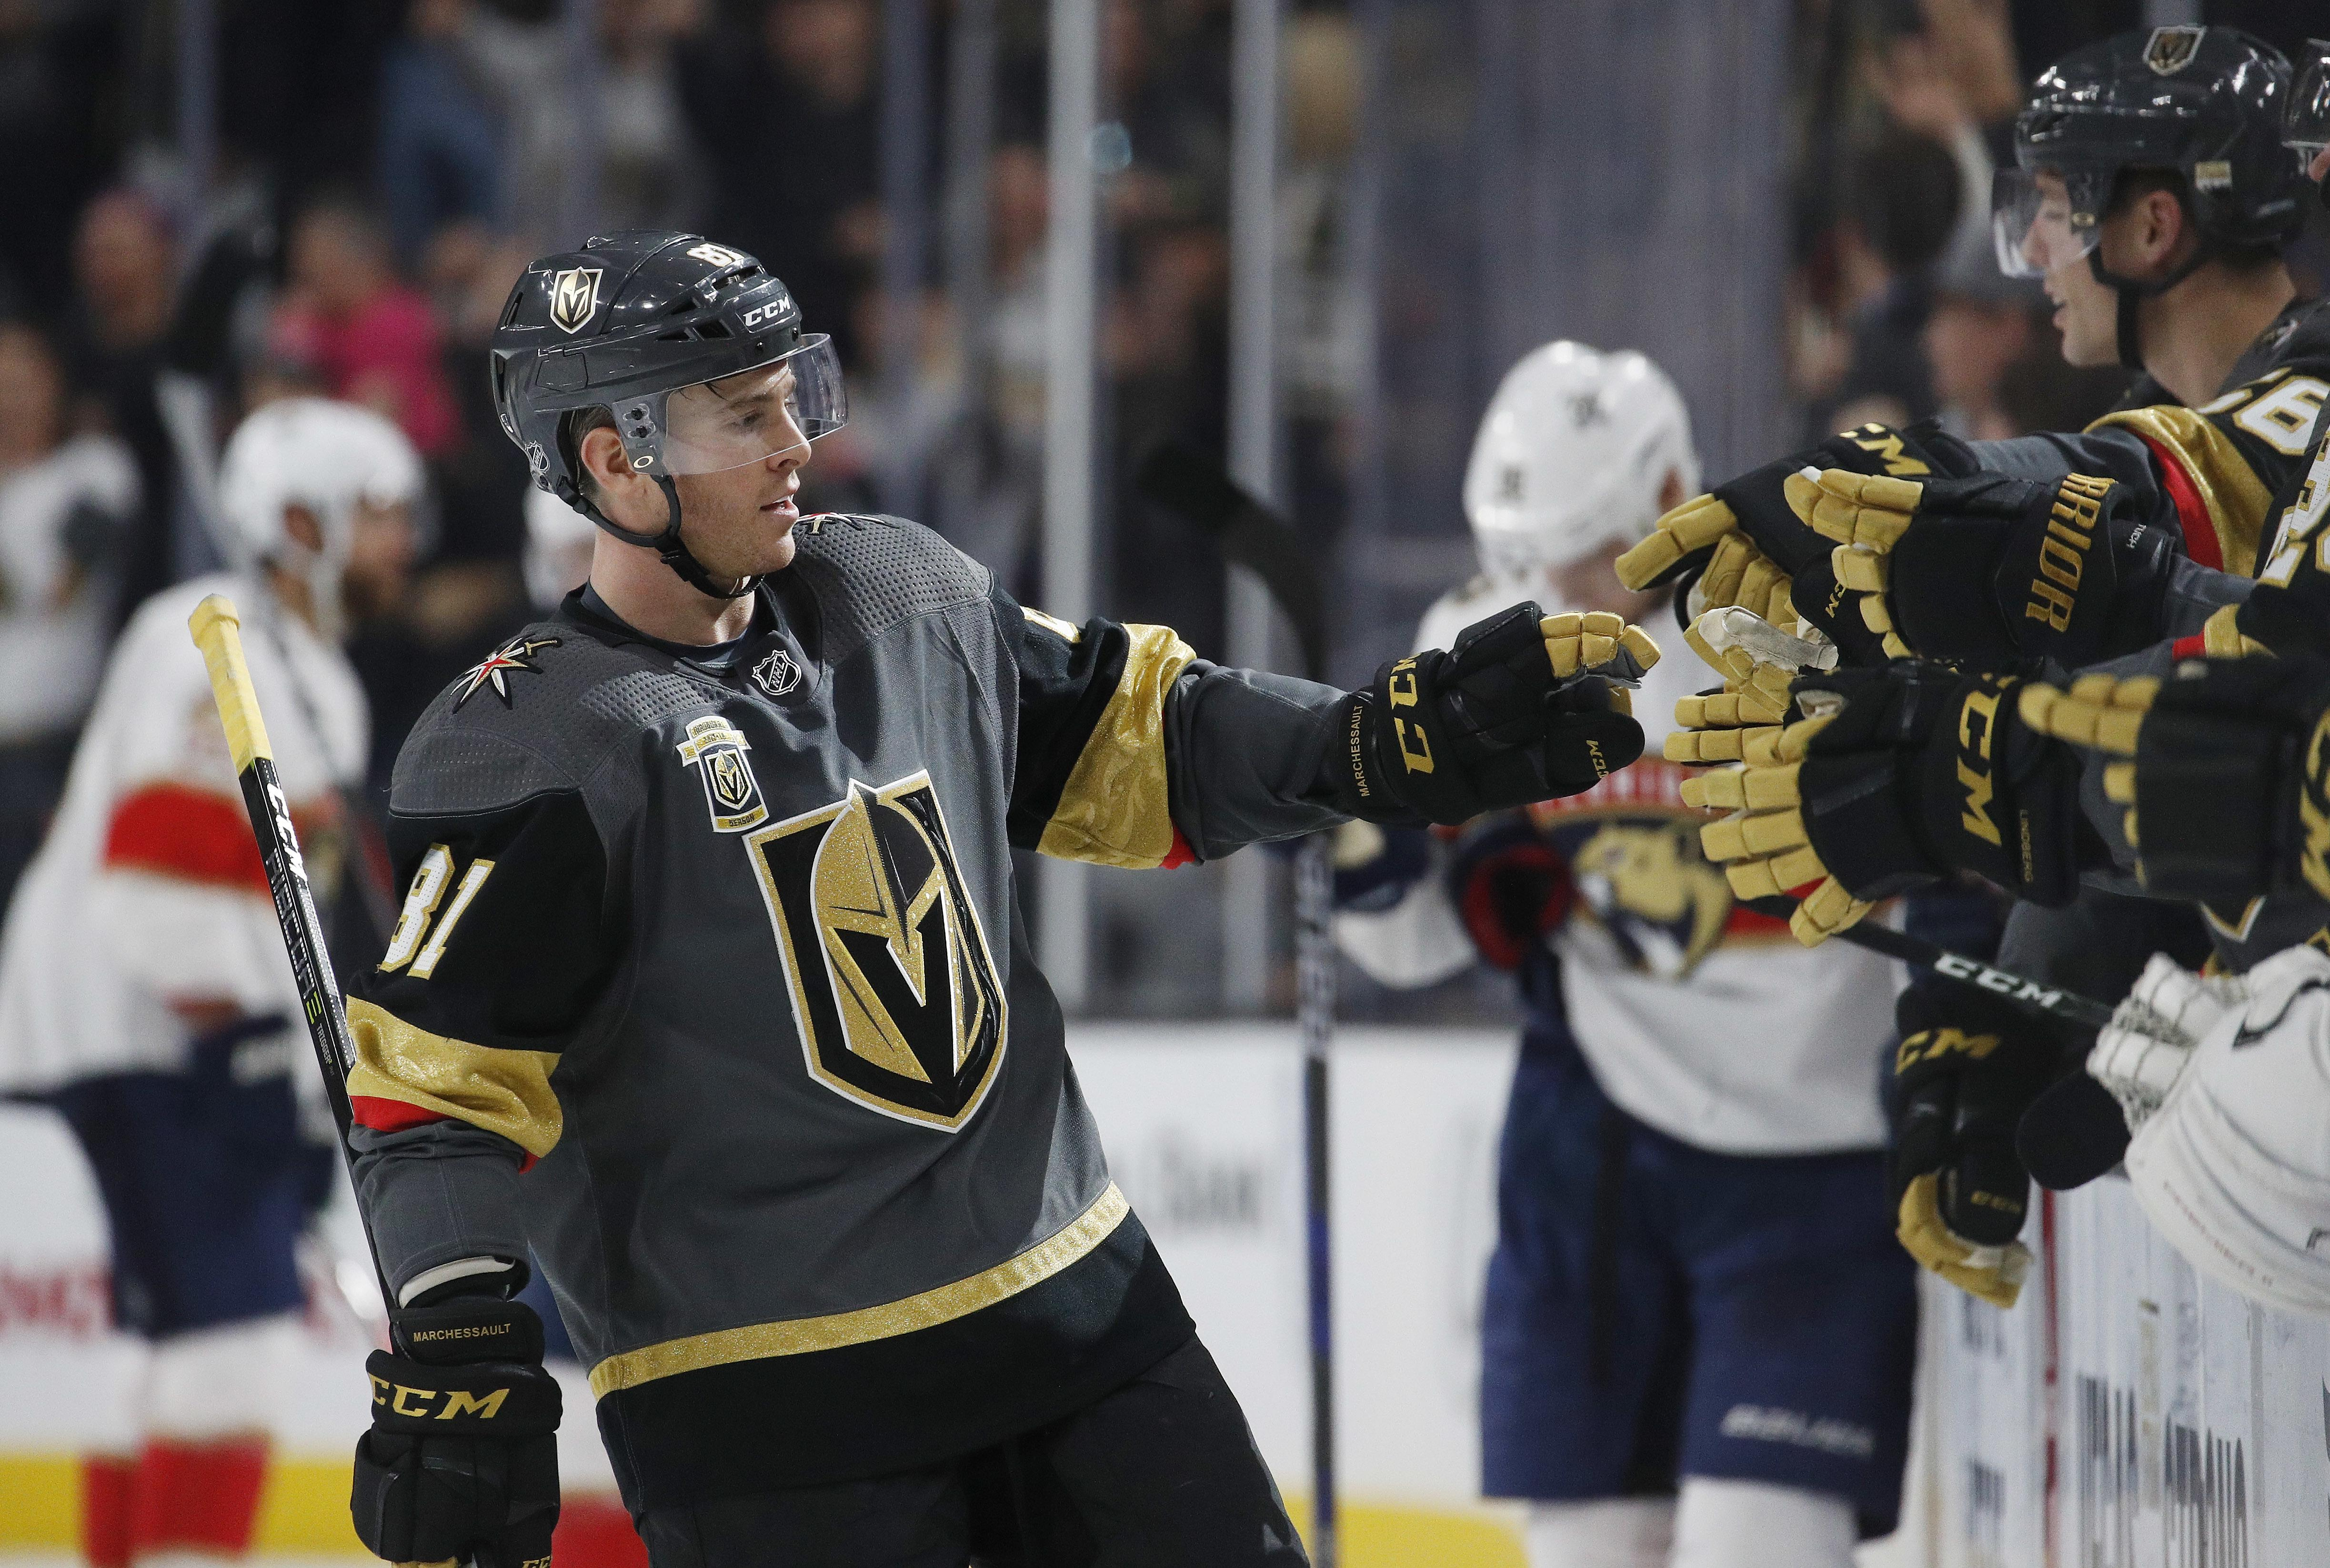 Panthers_golden_knights_hockey_19324